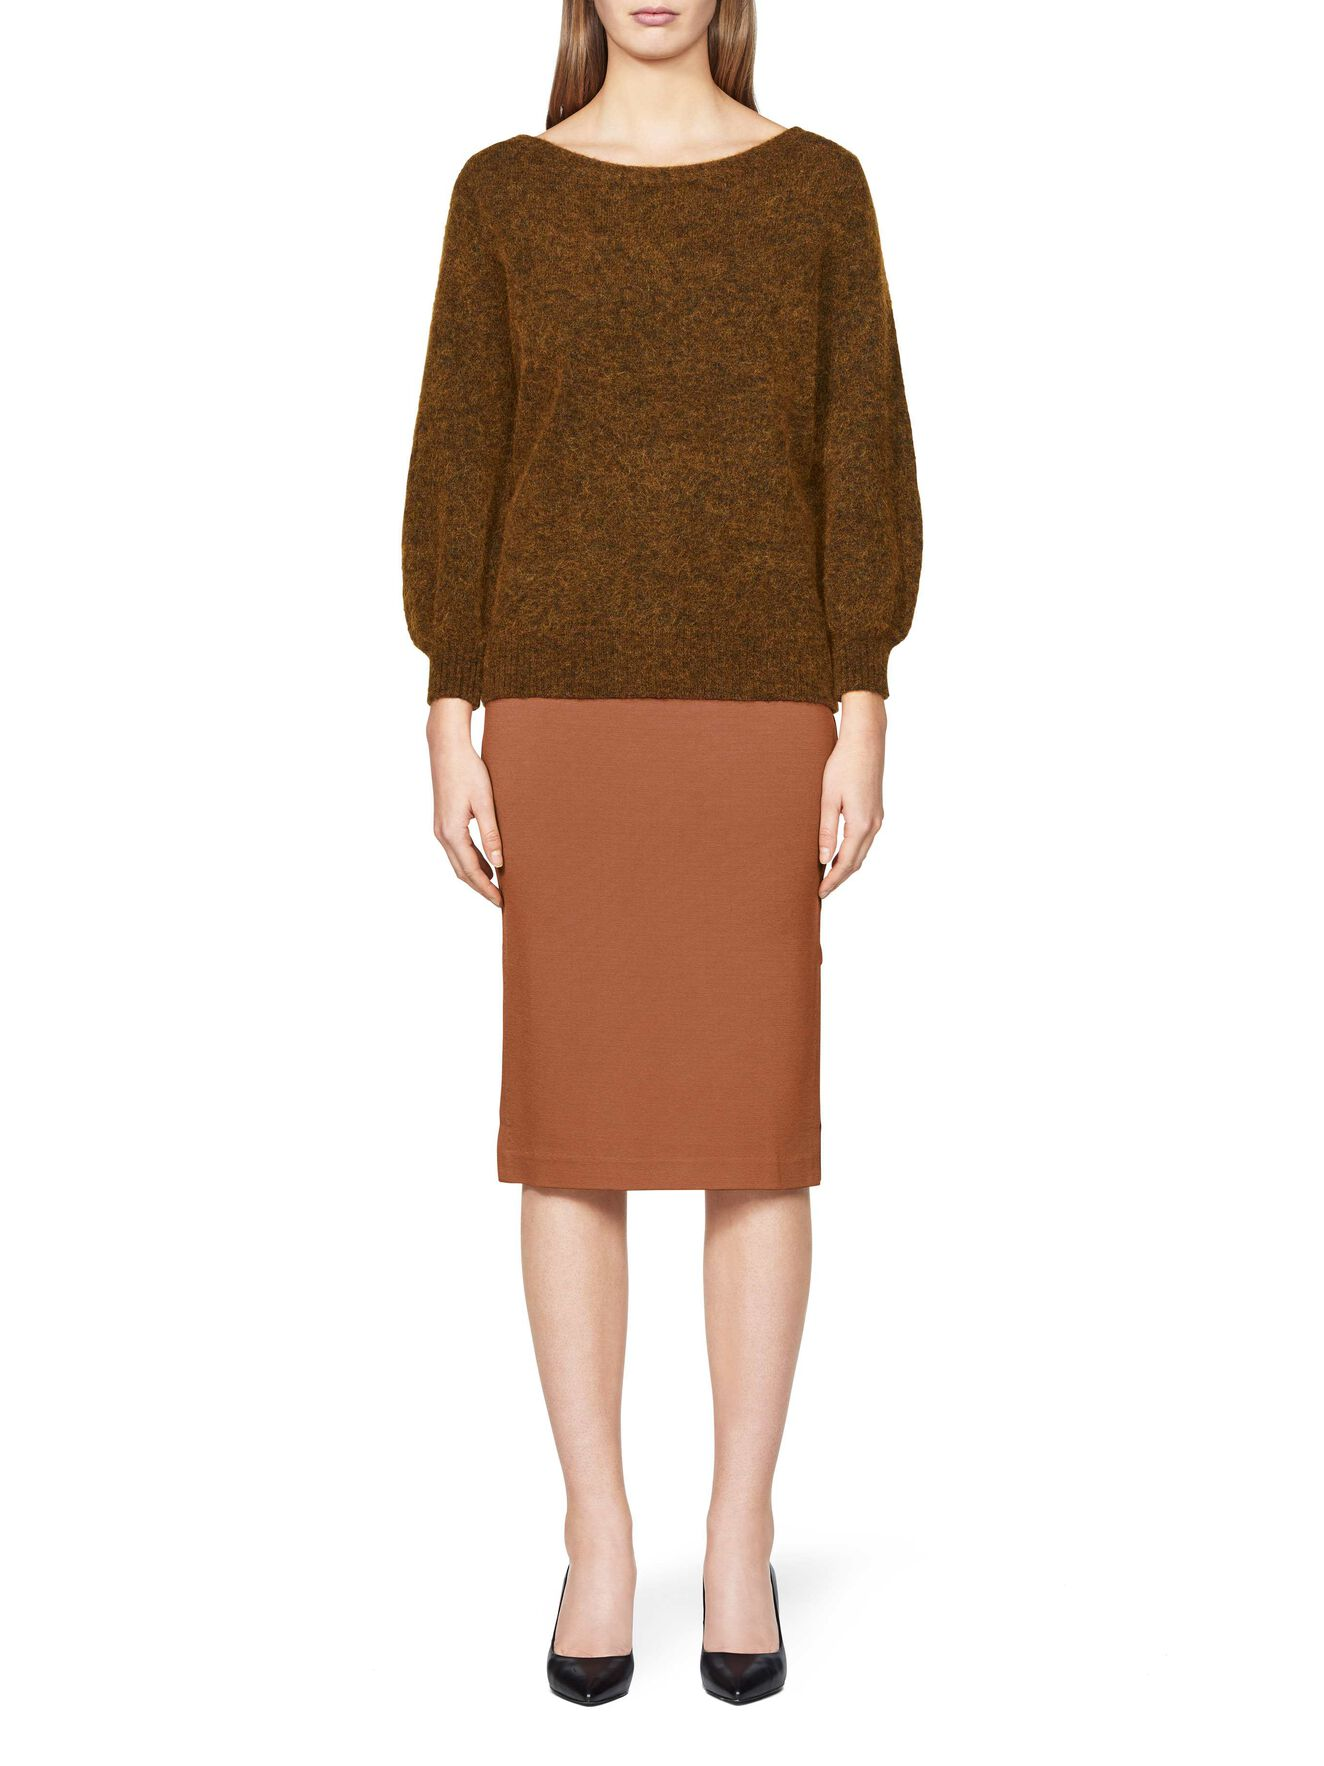 Franki skirt in Leather Brown from Tiger of Sweden